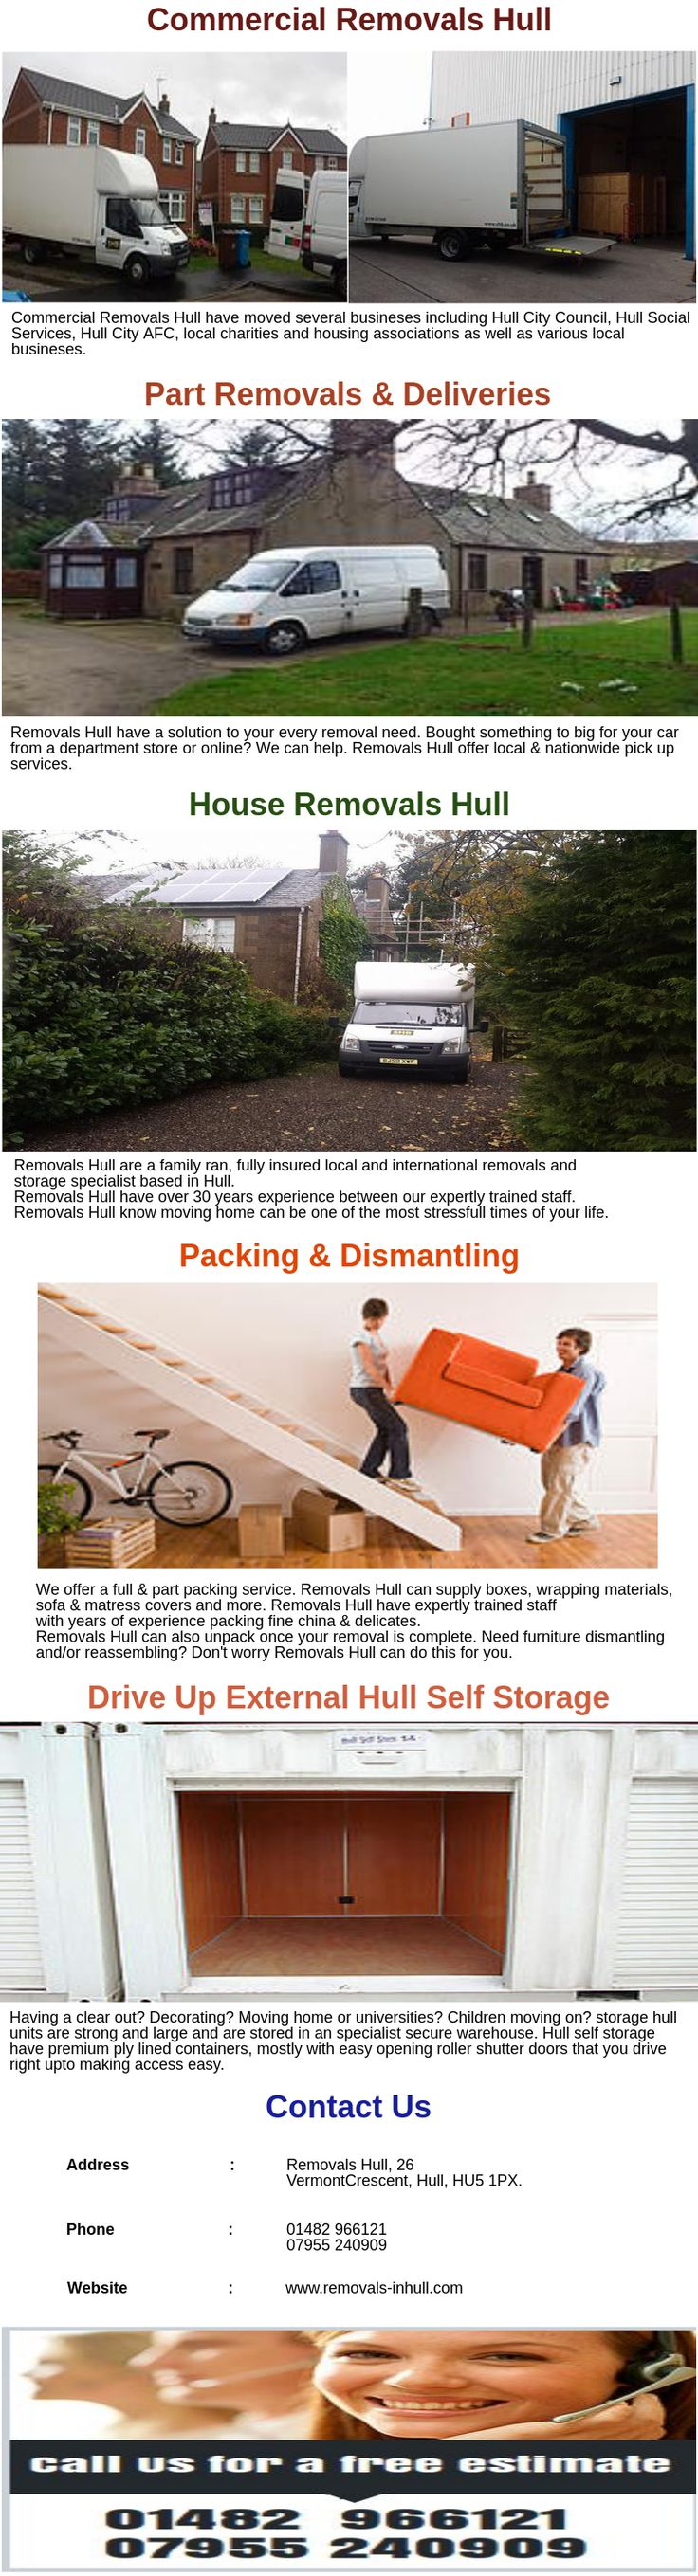 We offer a full & part packing service. Removals Hull can supply boxes, wrapping materials, sofa & matress covers and more. Removals Hull have expertly trained staff with years of experience packing fine china & delicates. Removals Hull can also unpack once your removal is complete.